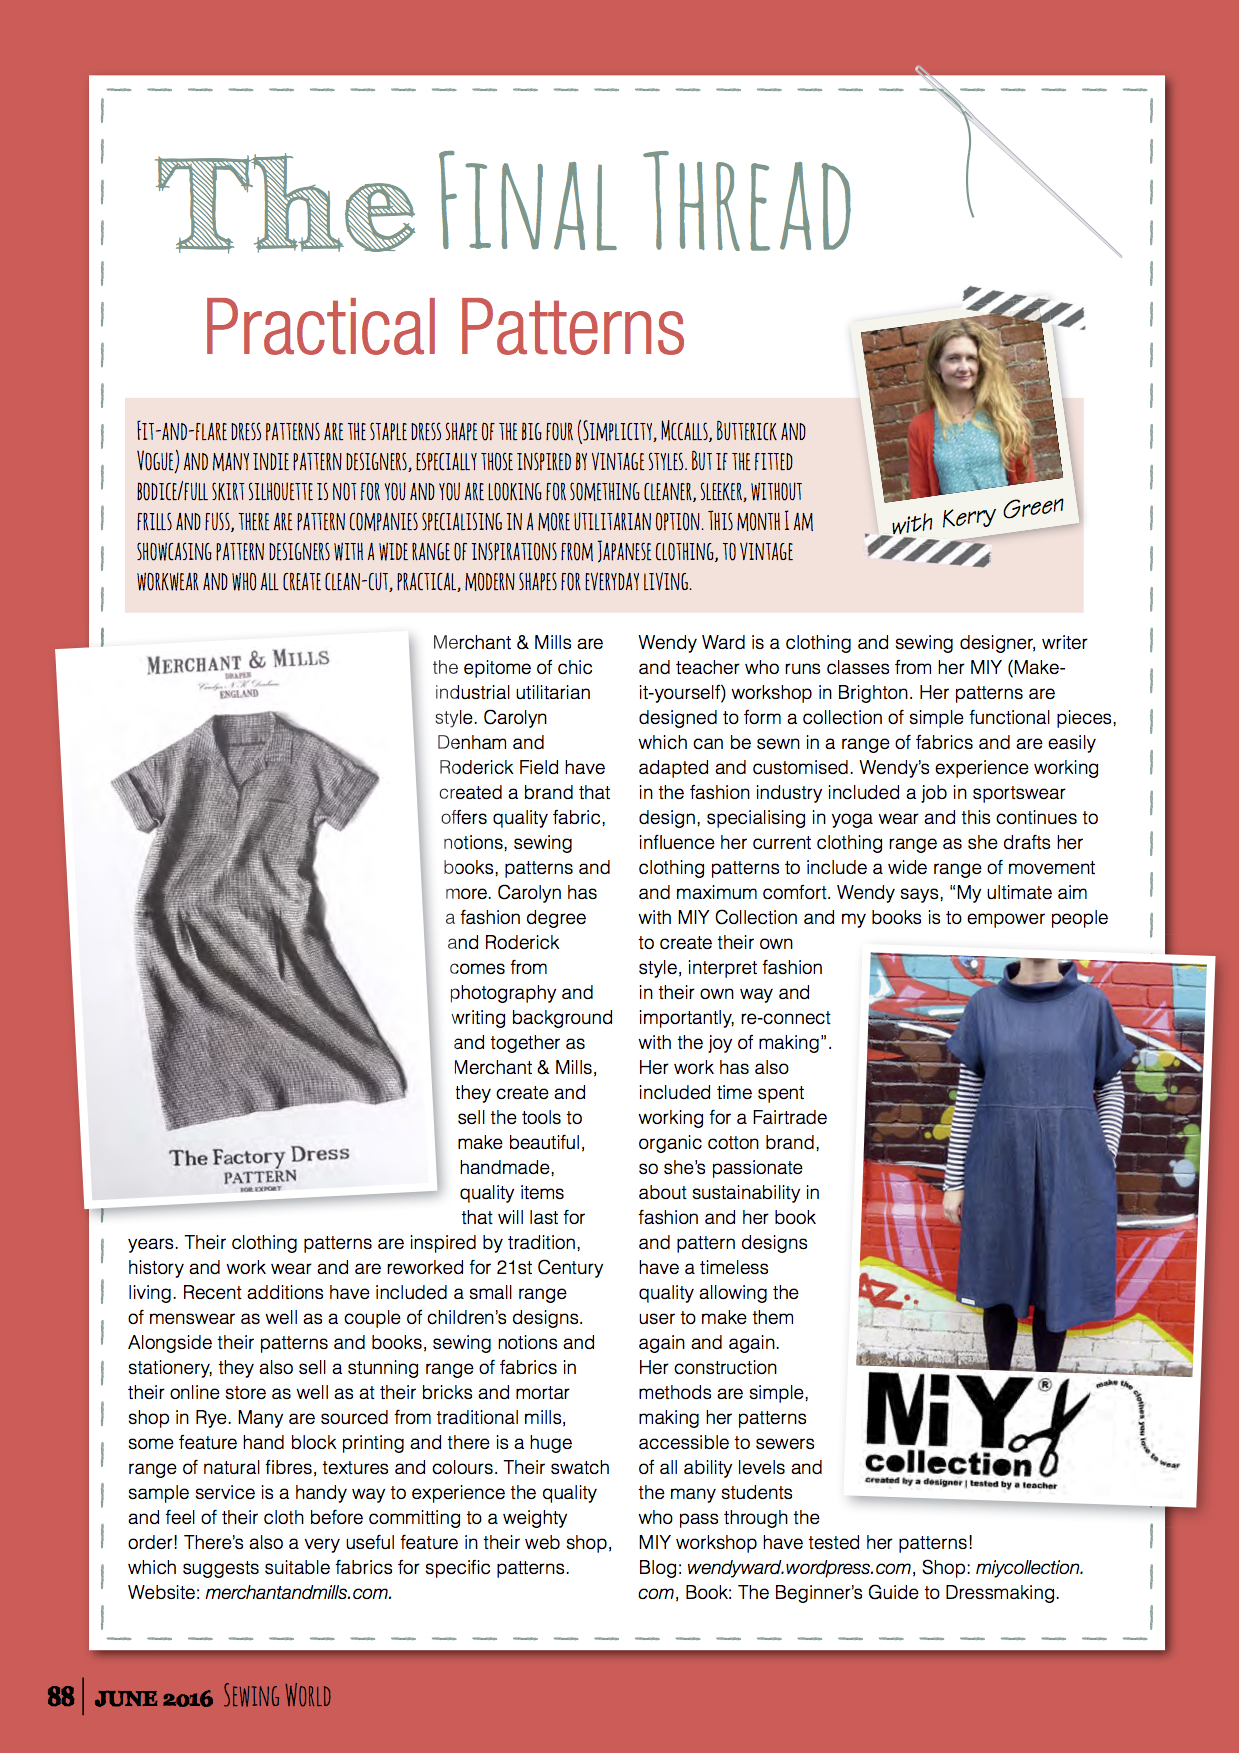 Practical patterns miy collection in sewing world magazine miy collection patterns in sewing world magazine jeuxipadfo Choice Image